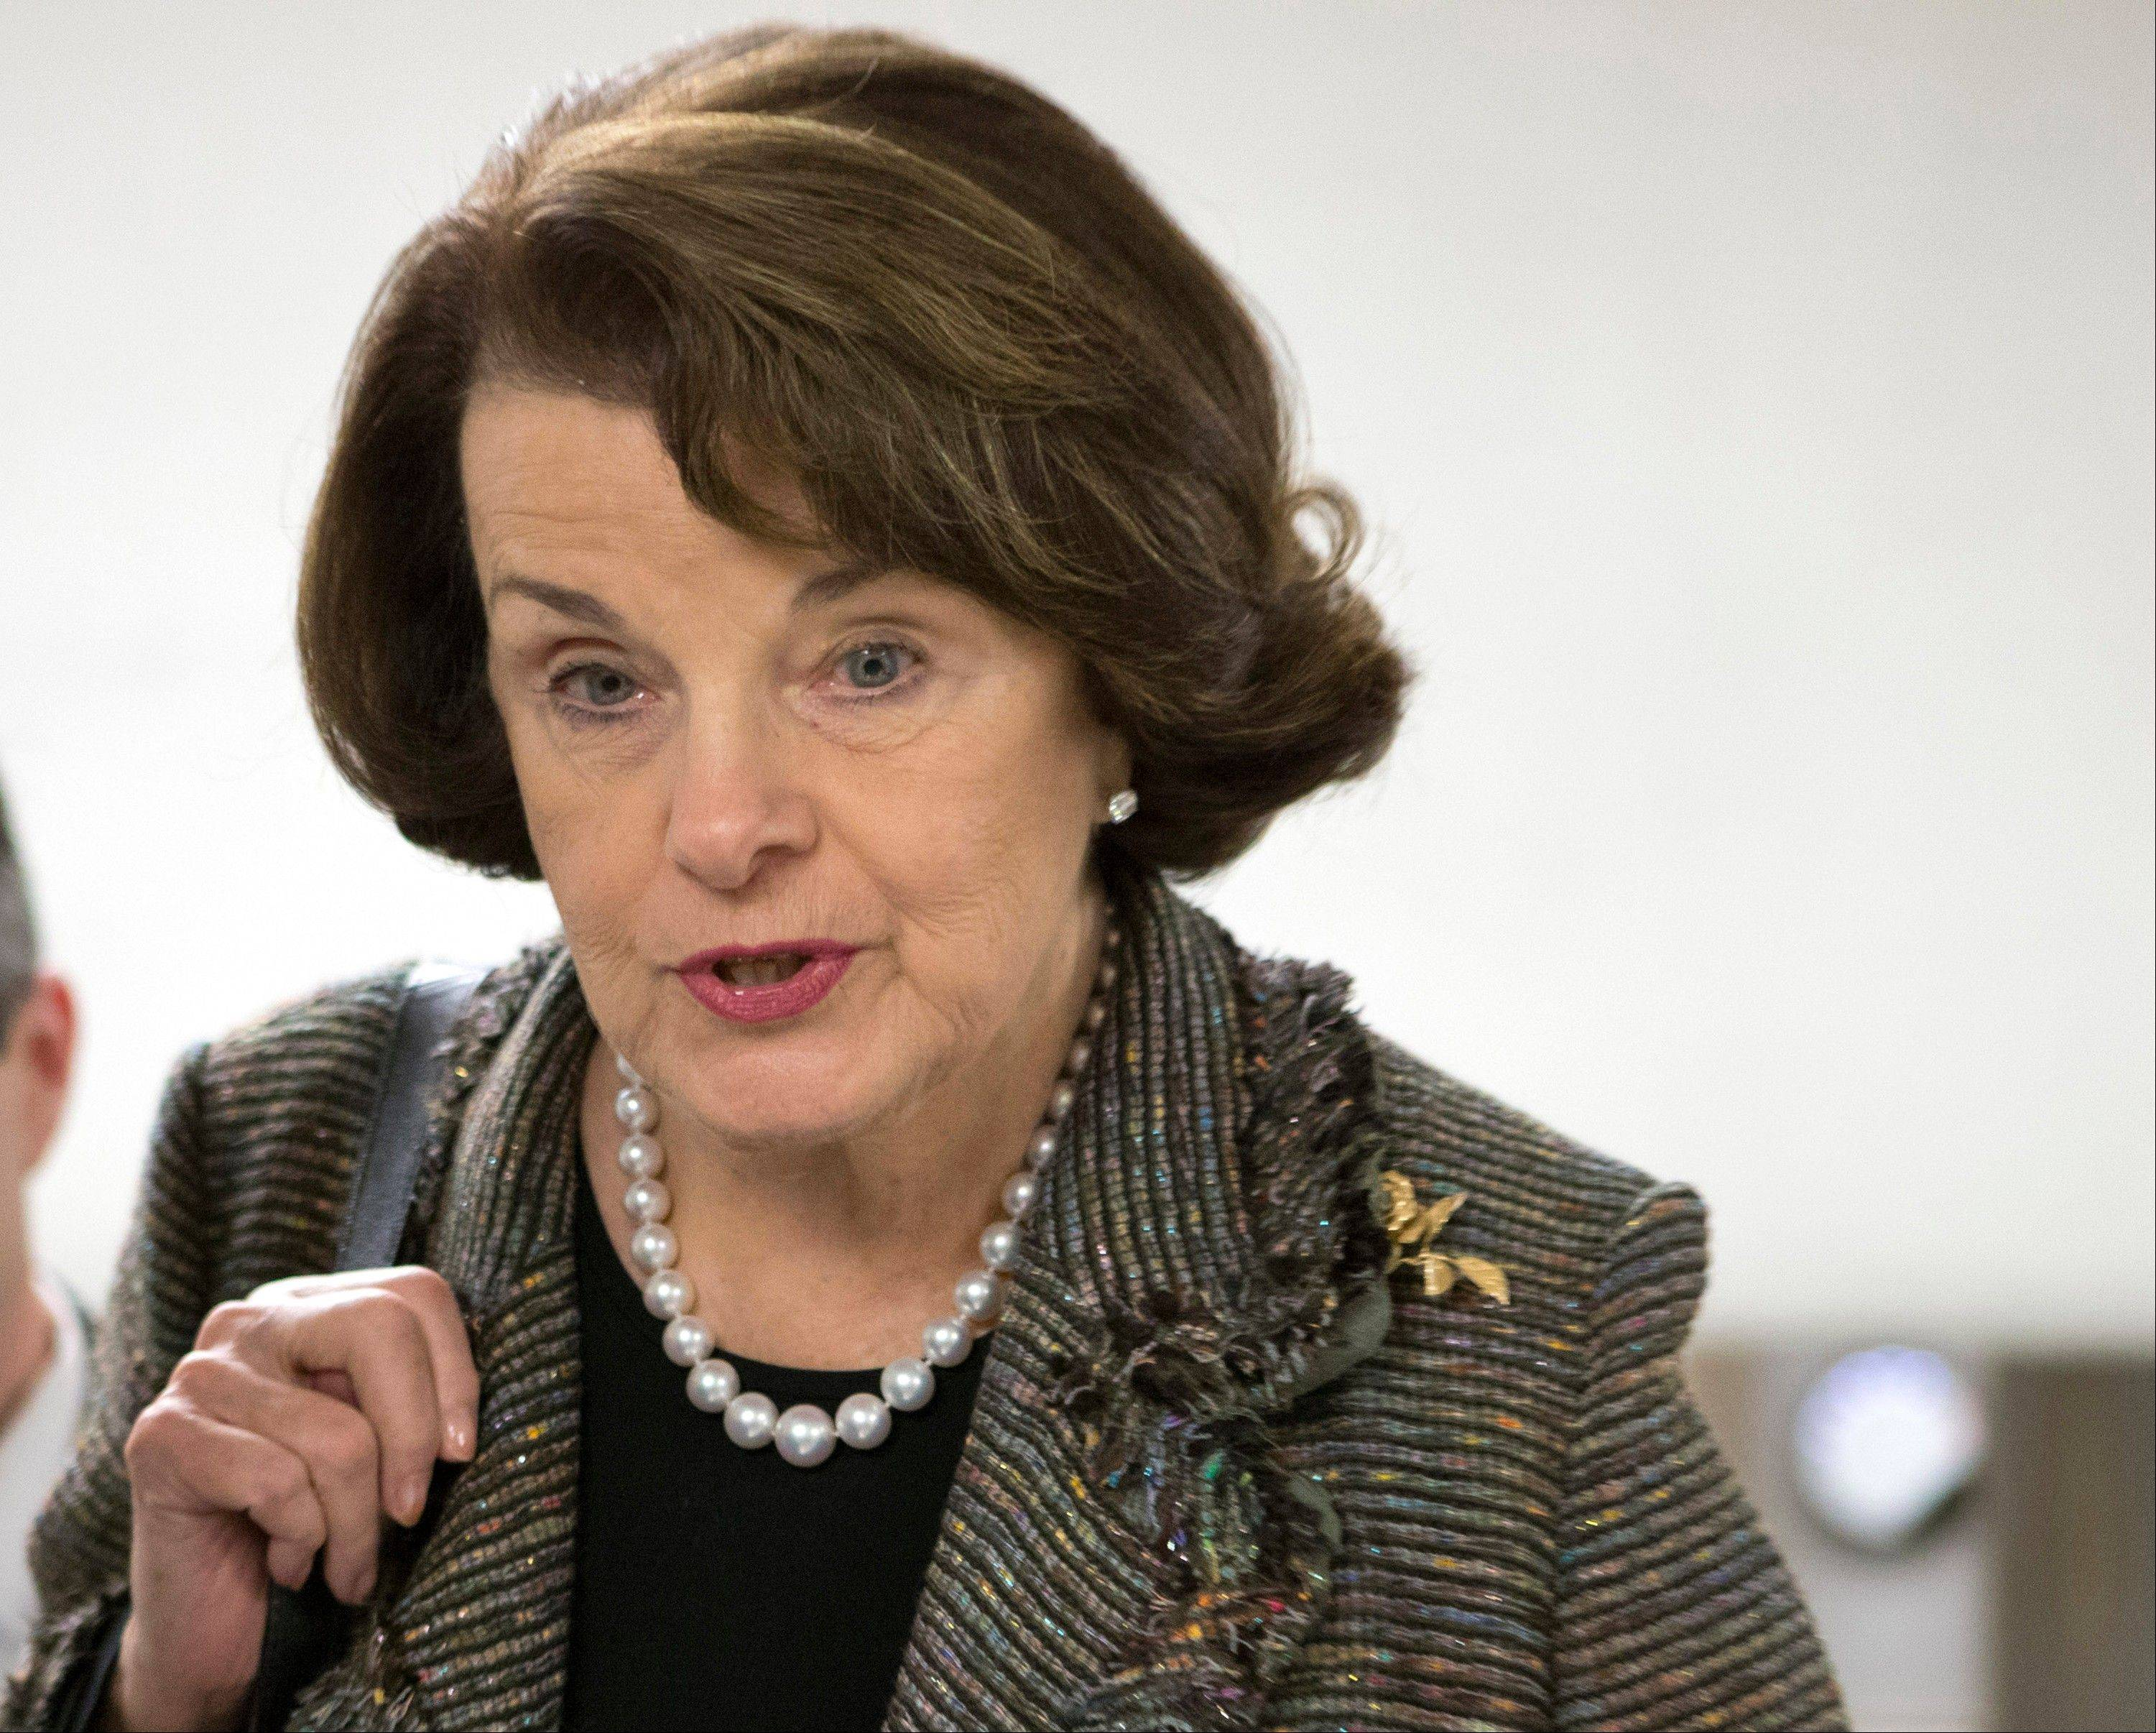 Sen. Dianne Feinstein, a California Democrat and sponsor of a proposed assault weapons ban, learned Tuesday her bill will not be part of the initial gun control measure the Senate will debate next month.